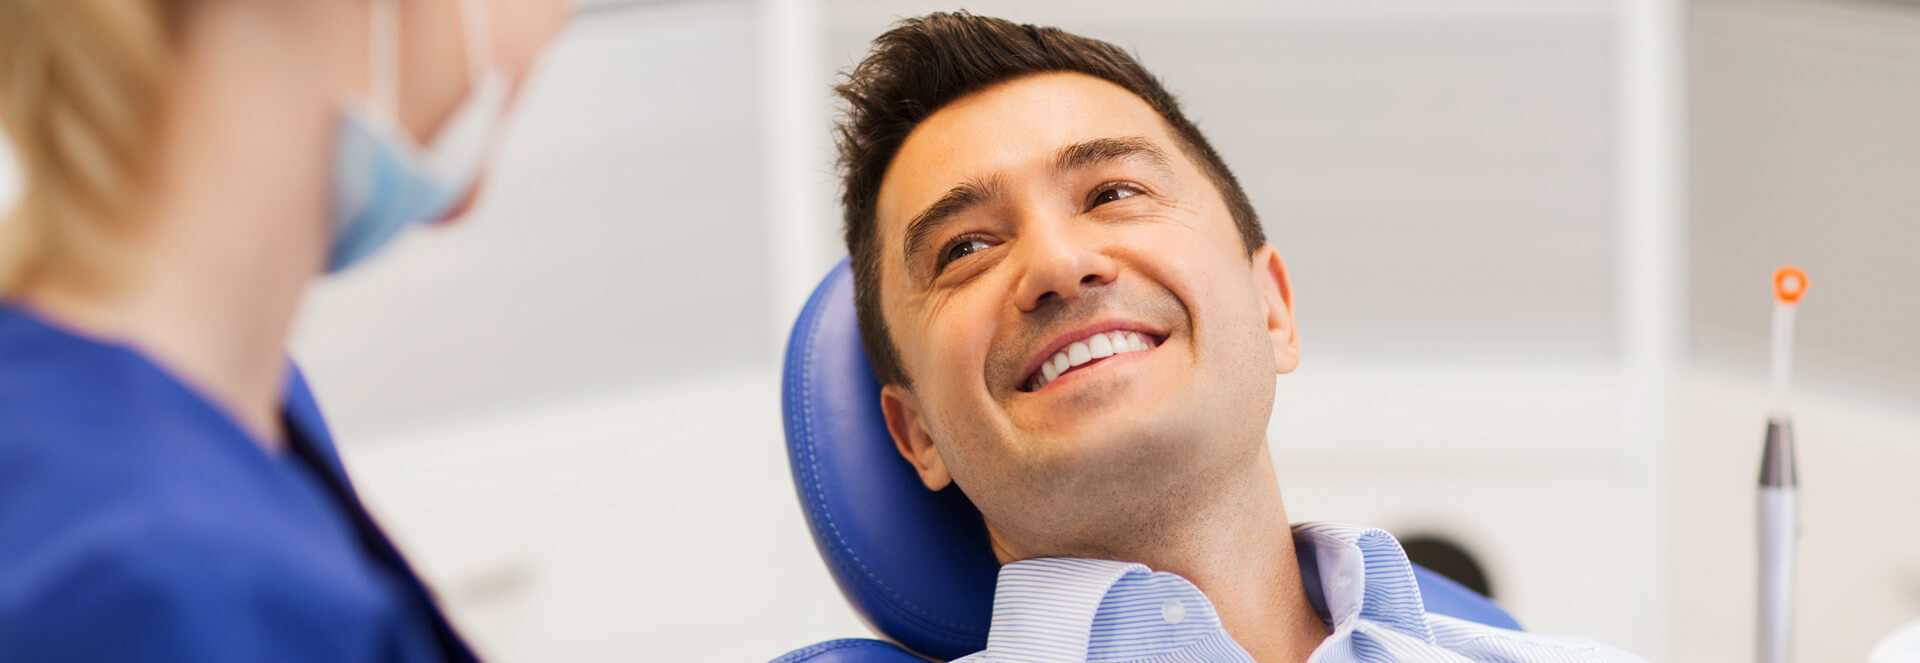 Male patient smiling with dental assistant